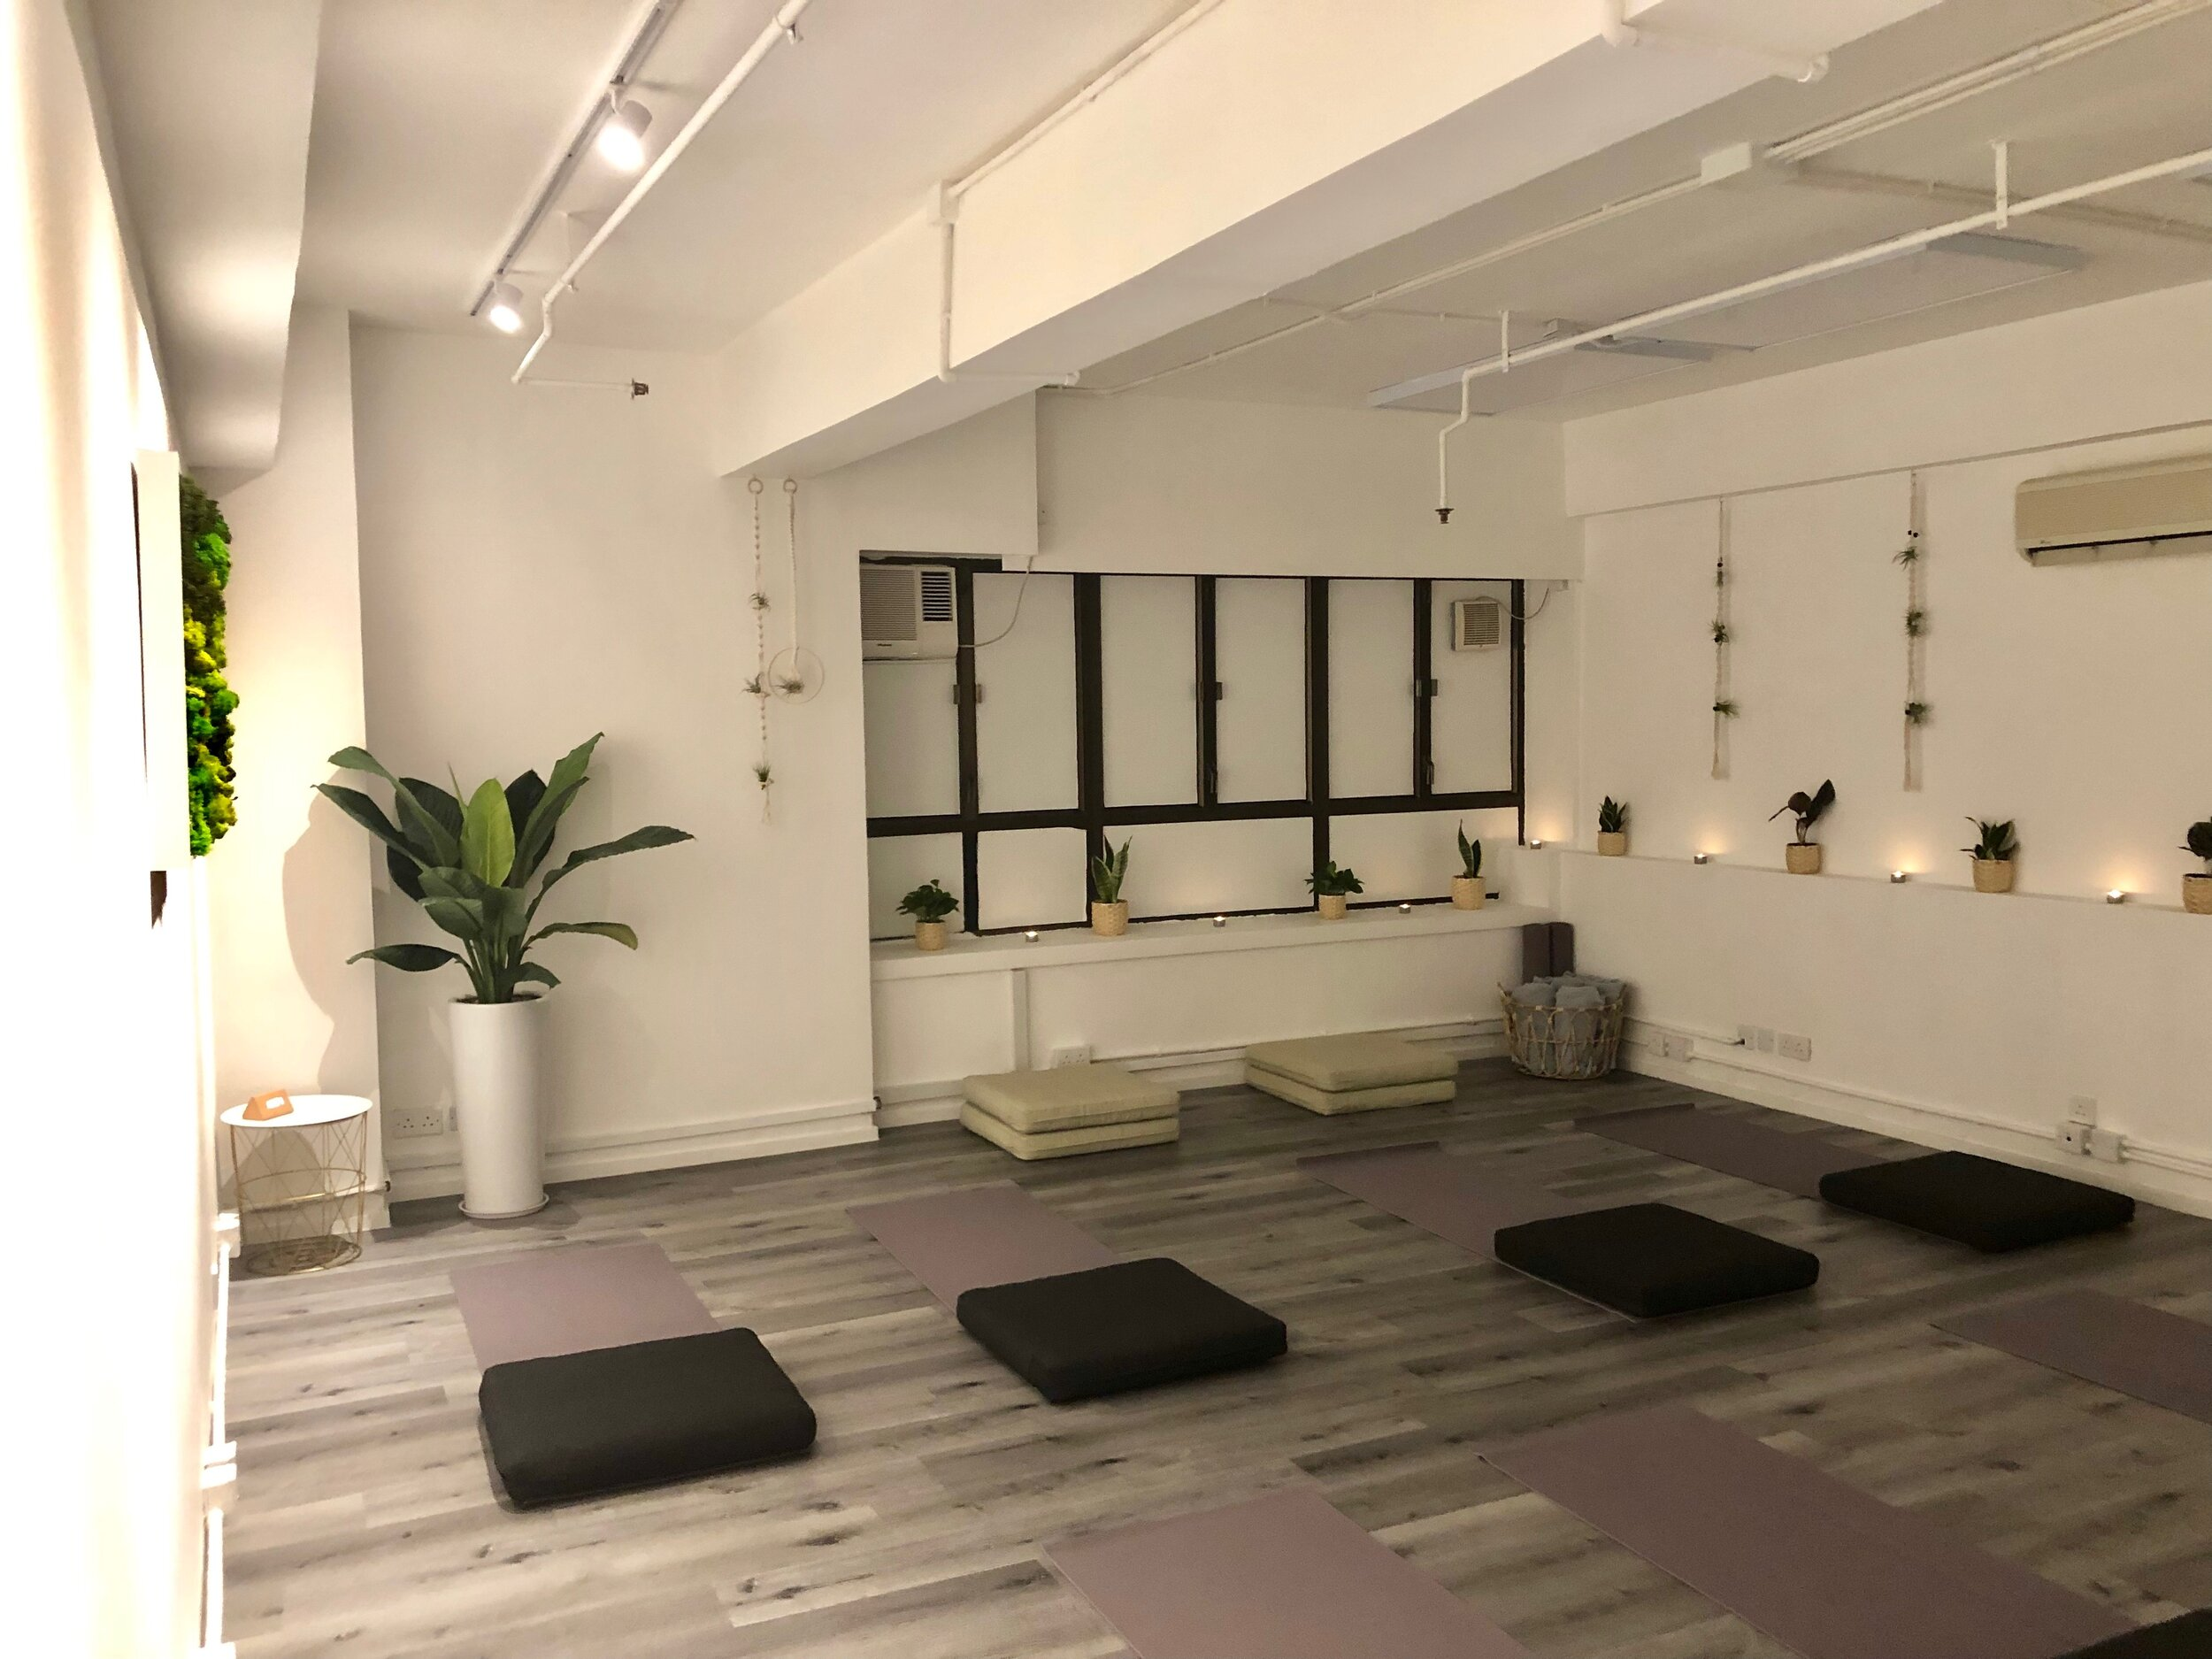 Our studio located on Lyndhurst Terrace in Soho, Central, Hong Kong.